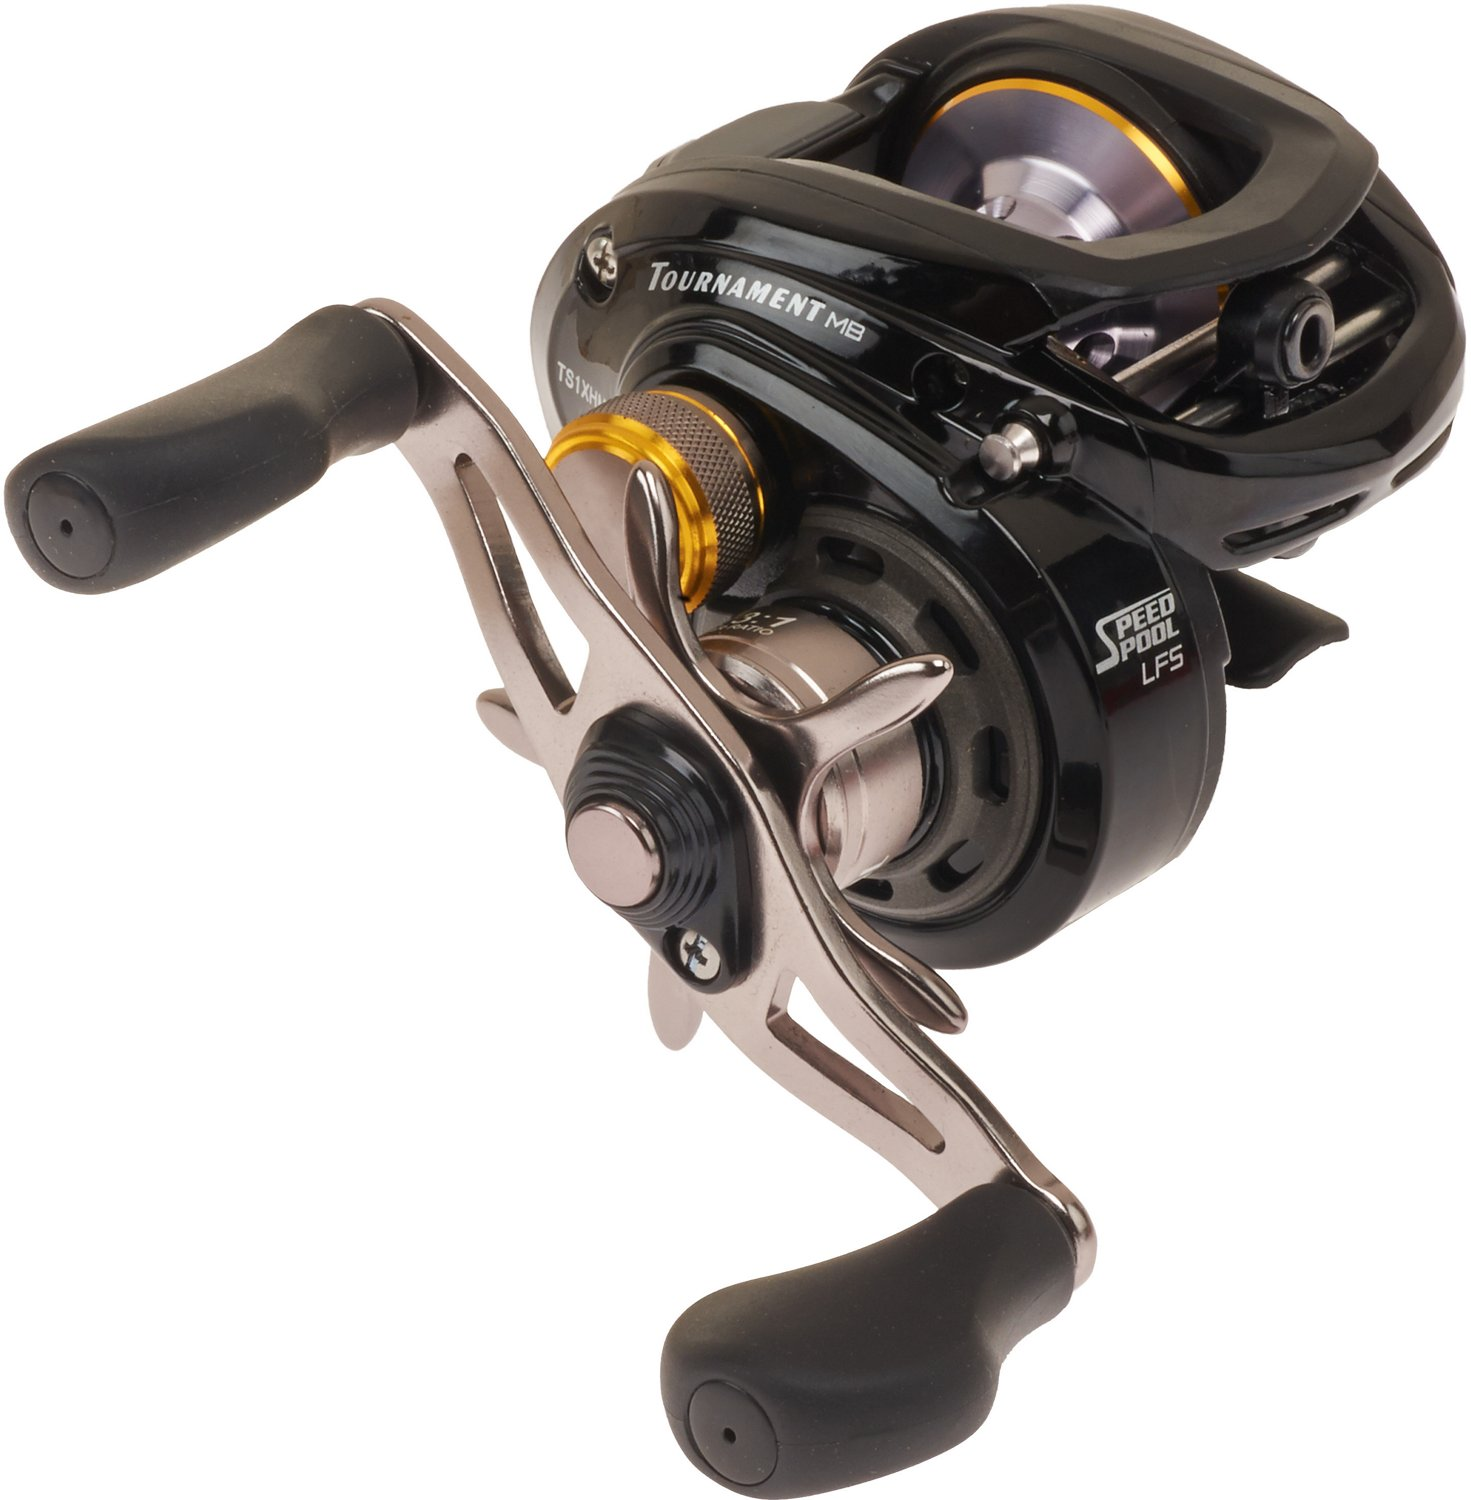 7f75b1d1812 Display product reviews for Lew's Tournament MB Speed Spool LFS Series Baitcast  Reel Right-handed